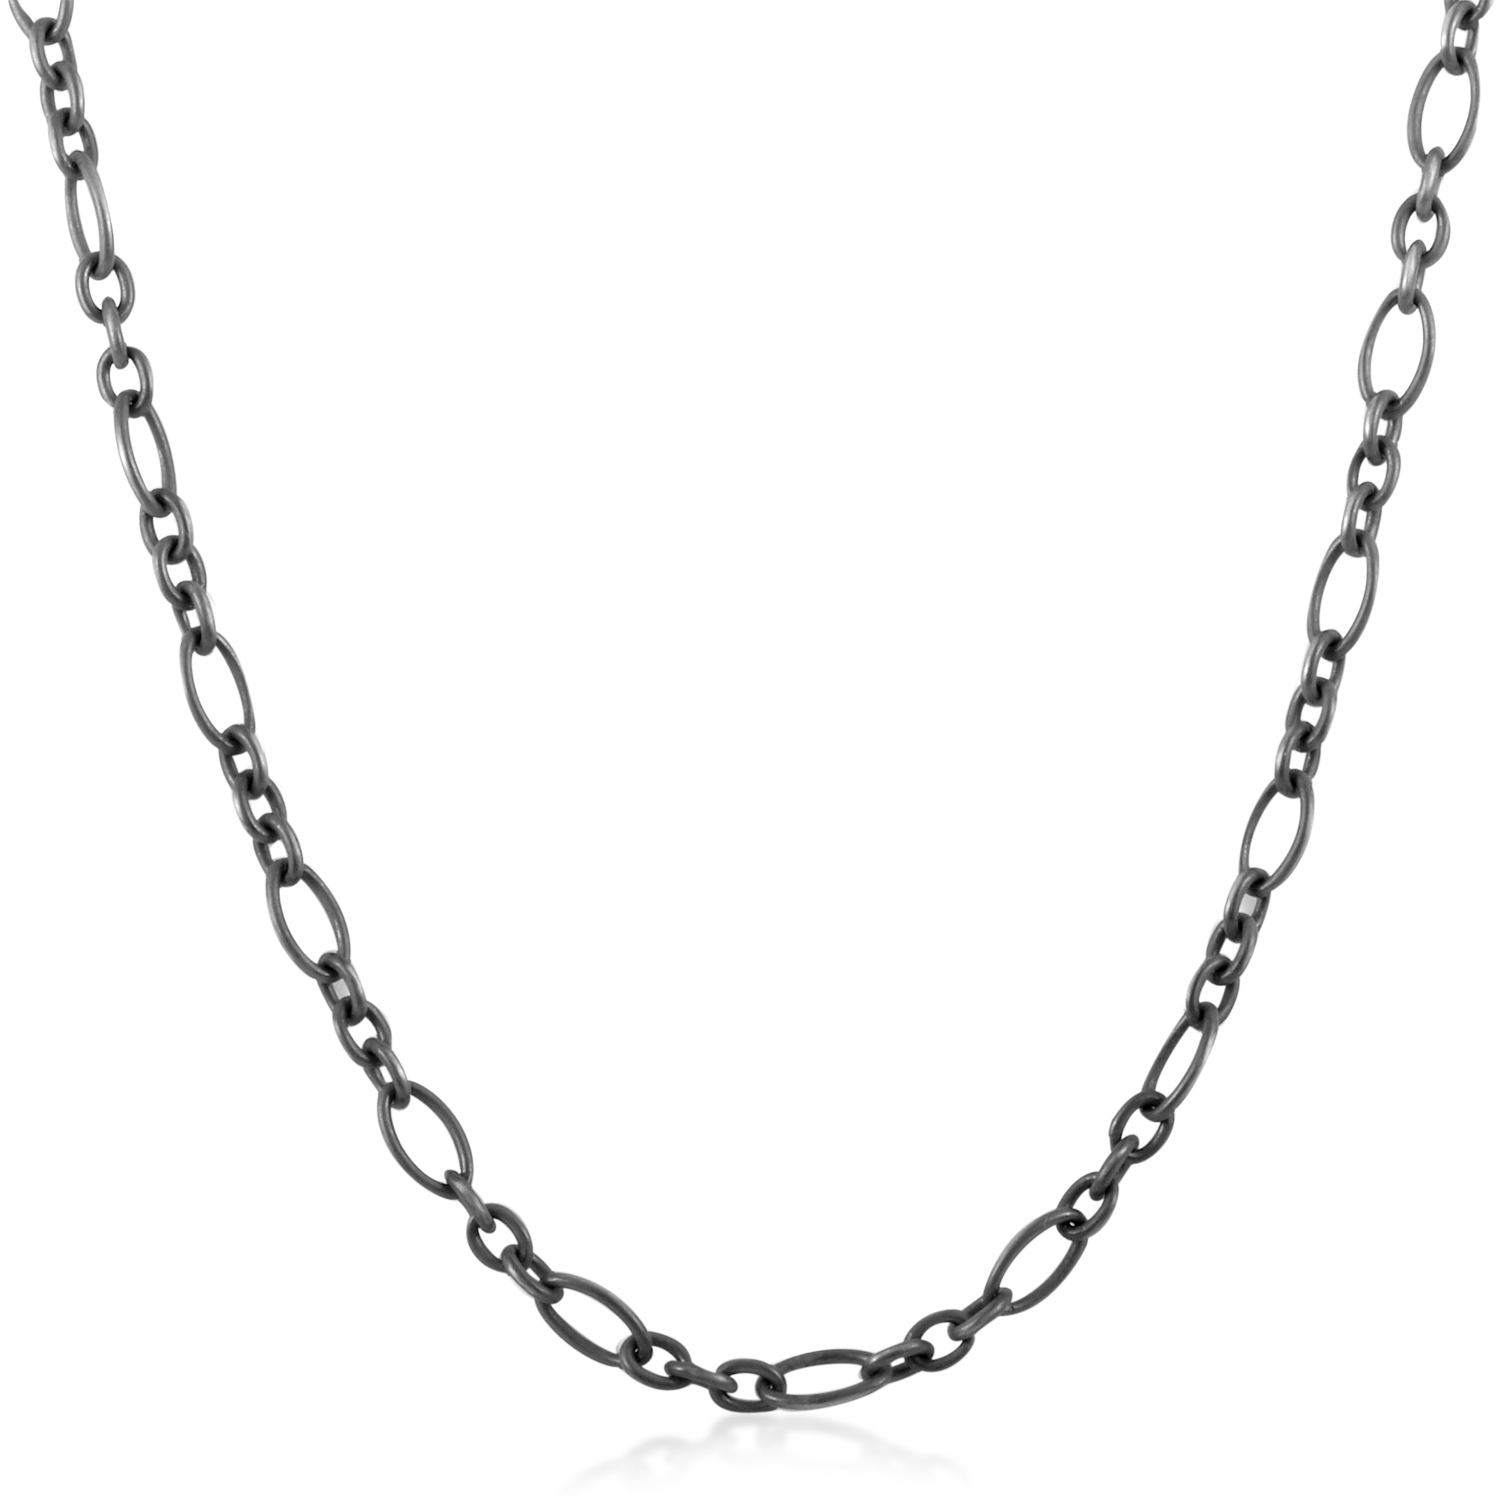 John Hardy Men's Sterling Silver Chain Necklace JHR01-061716